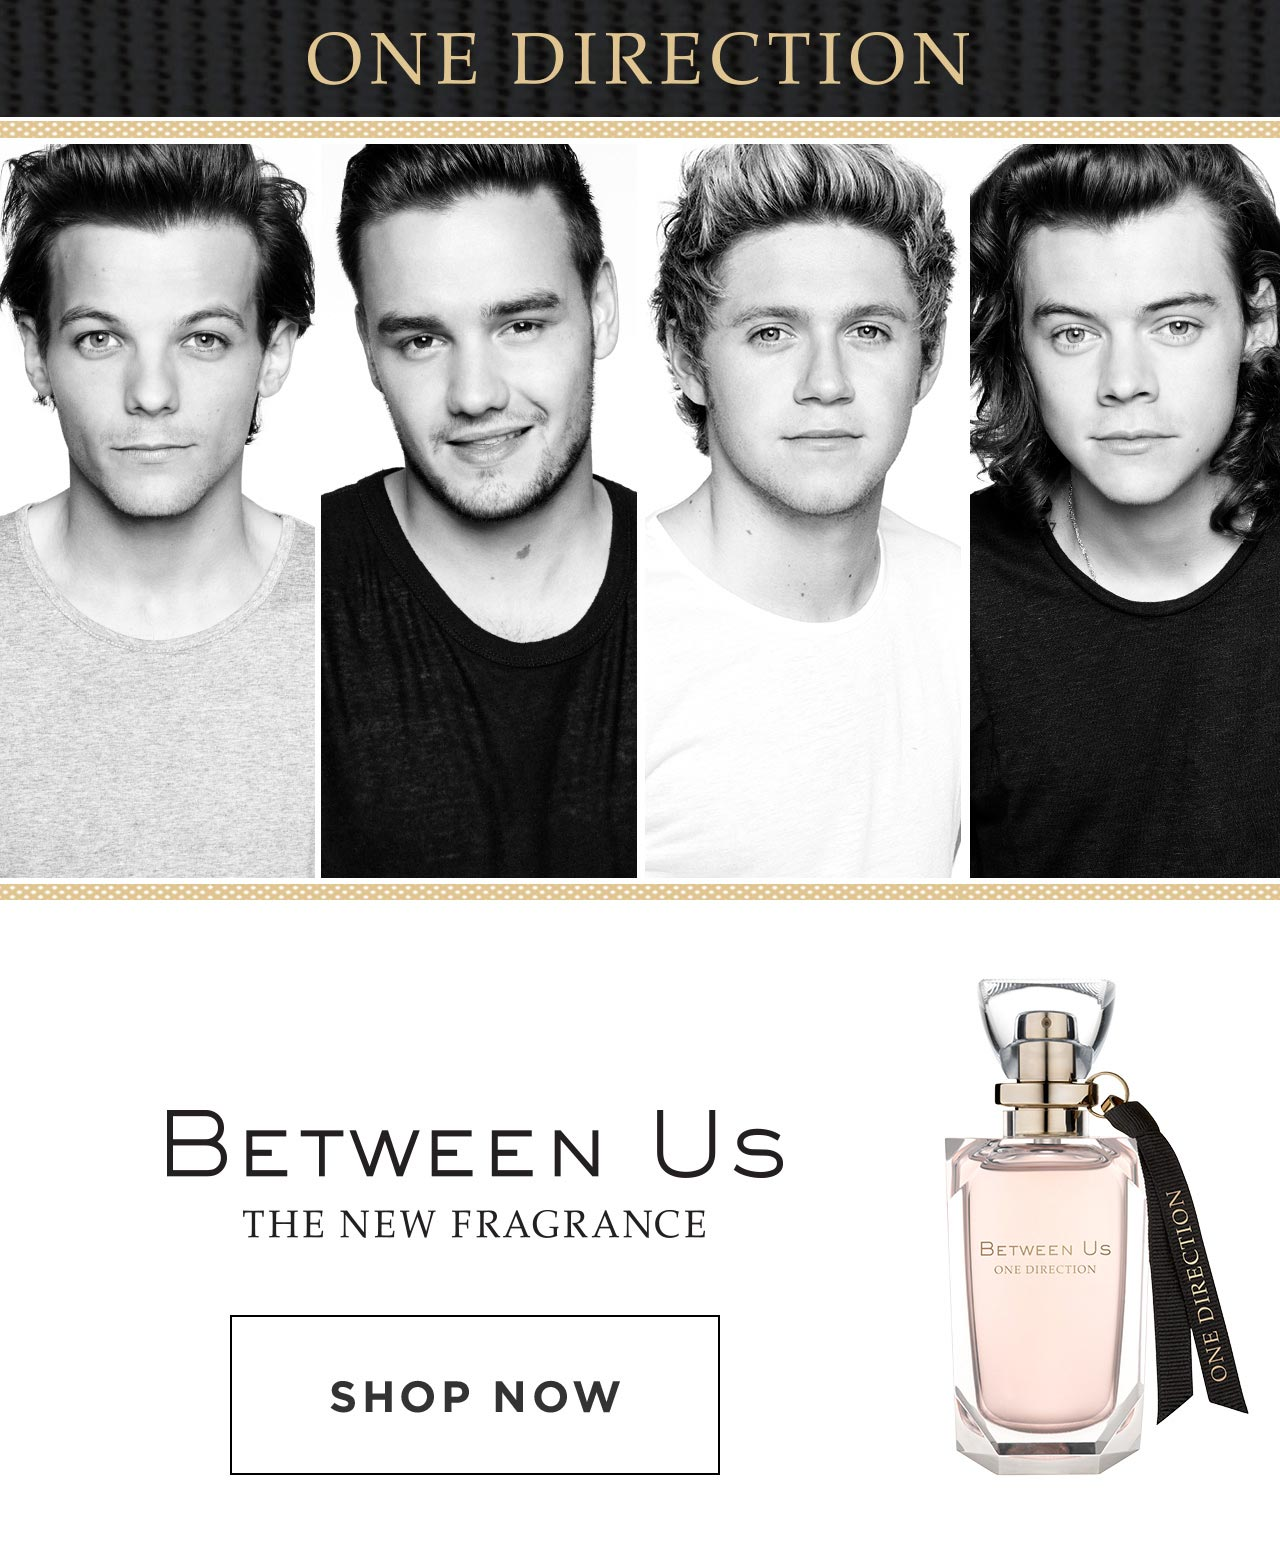 Between Us One Direction